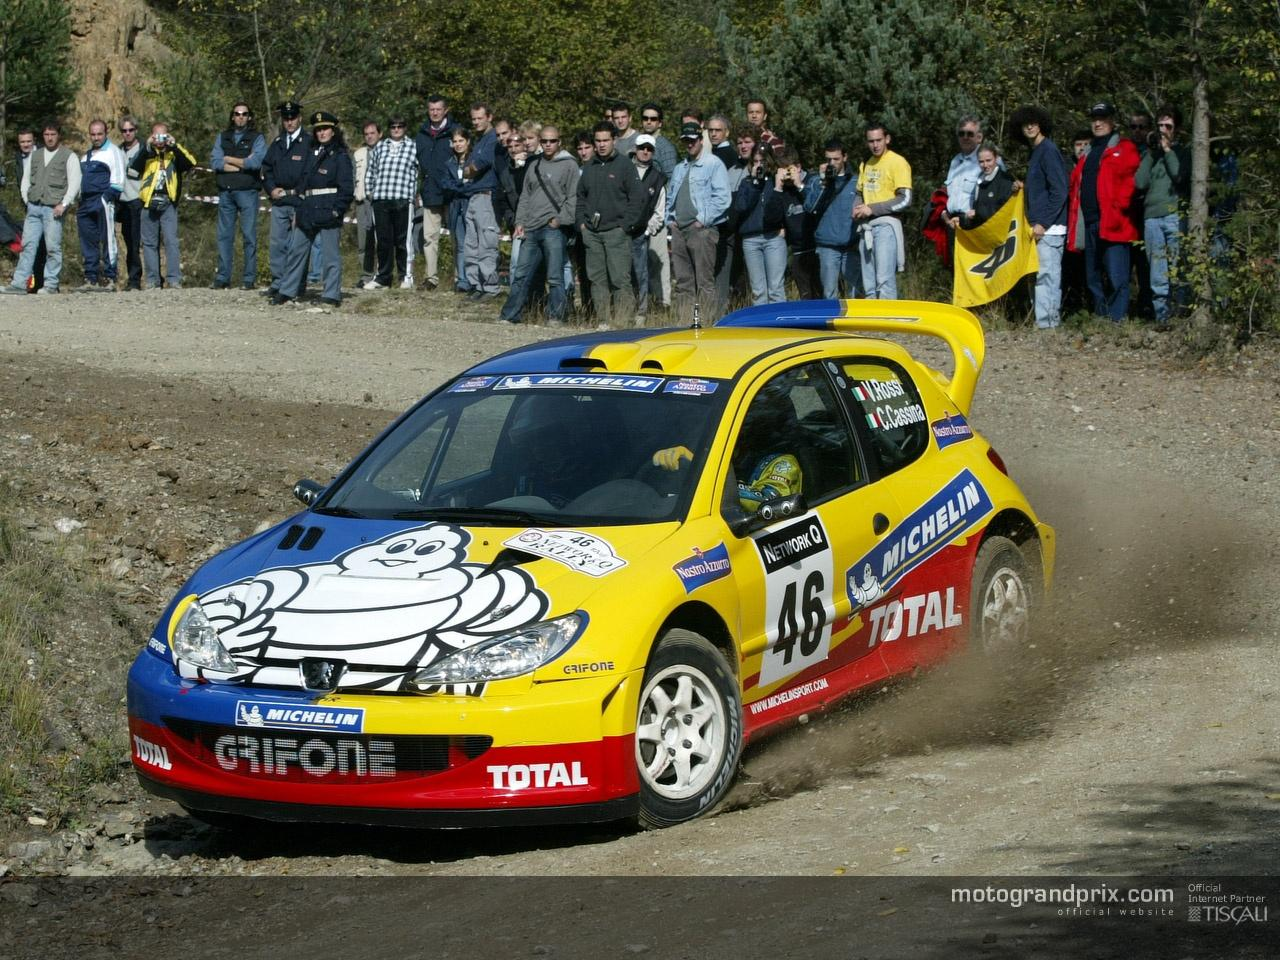 michelin-rally.jpg